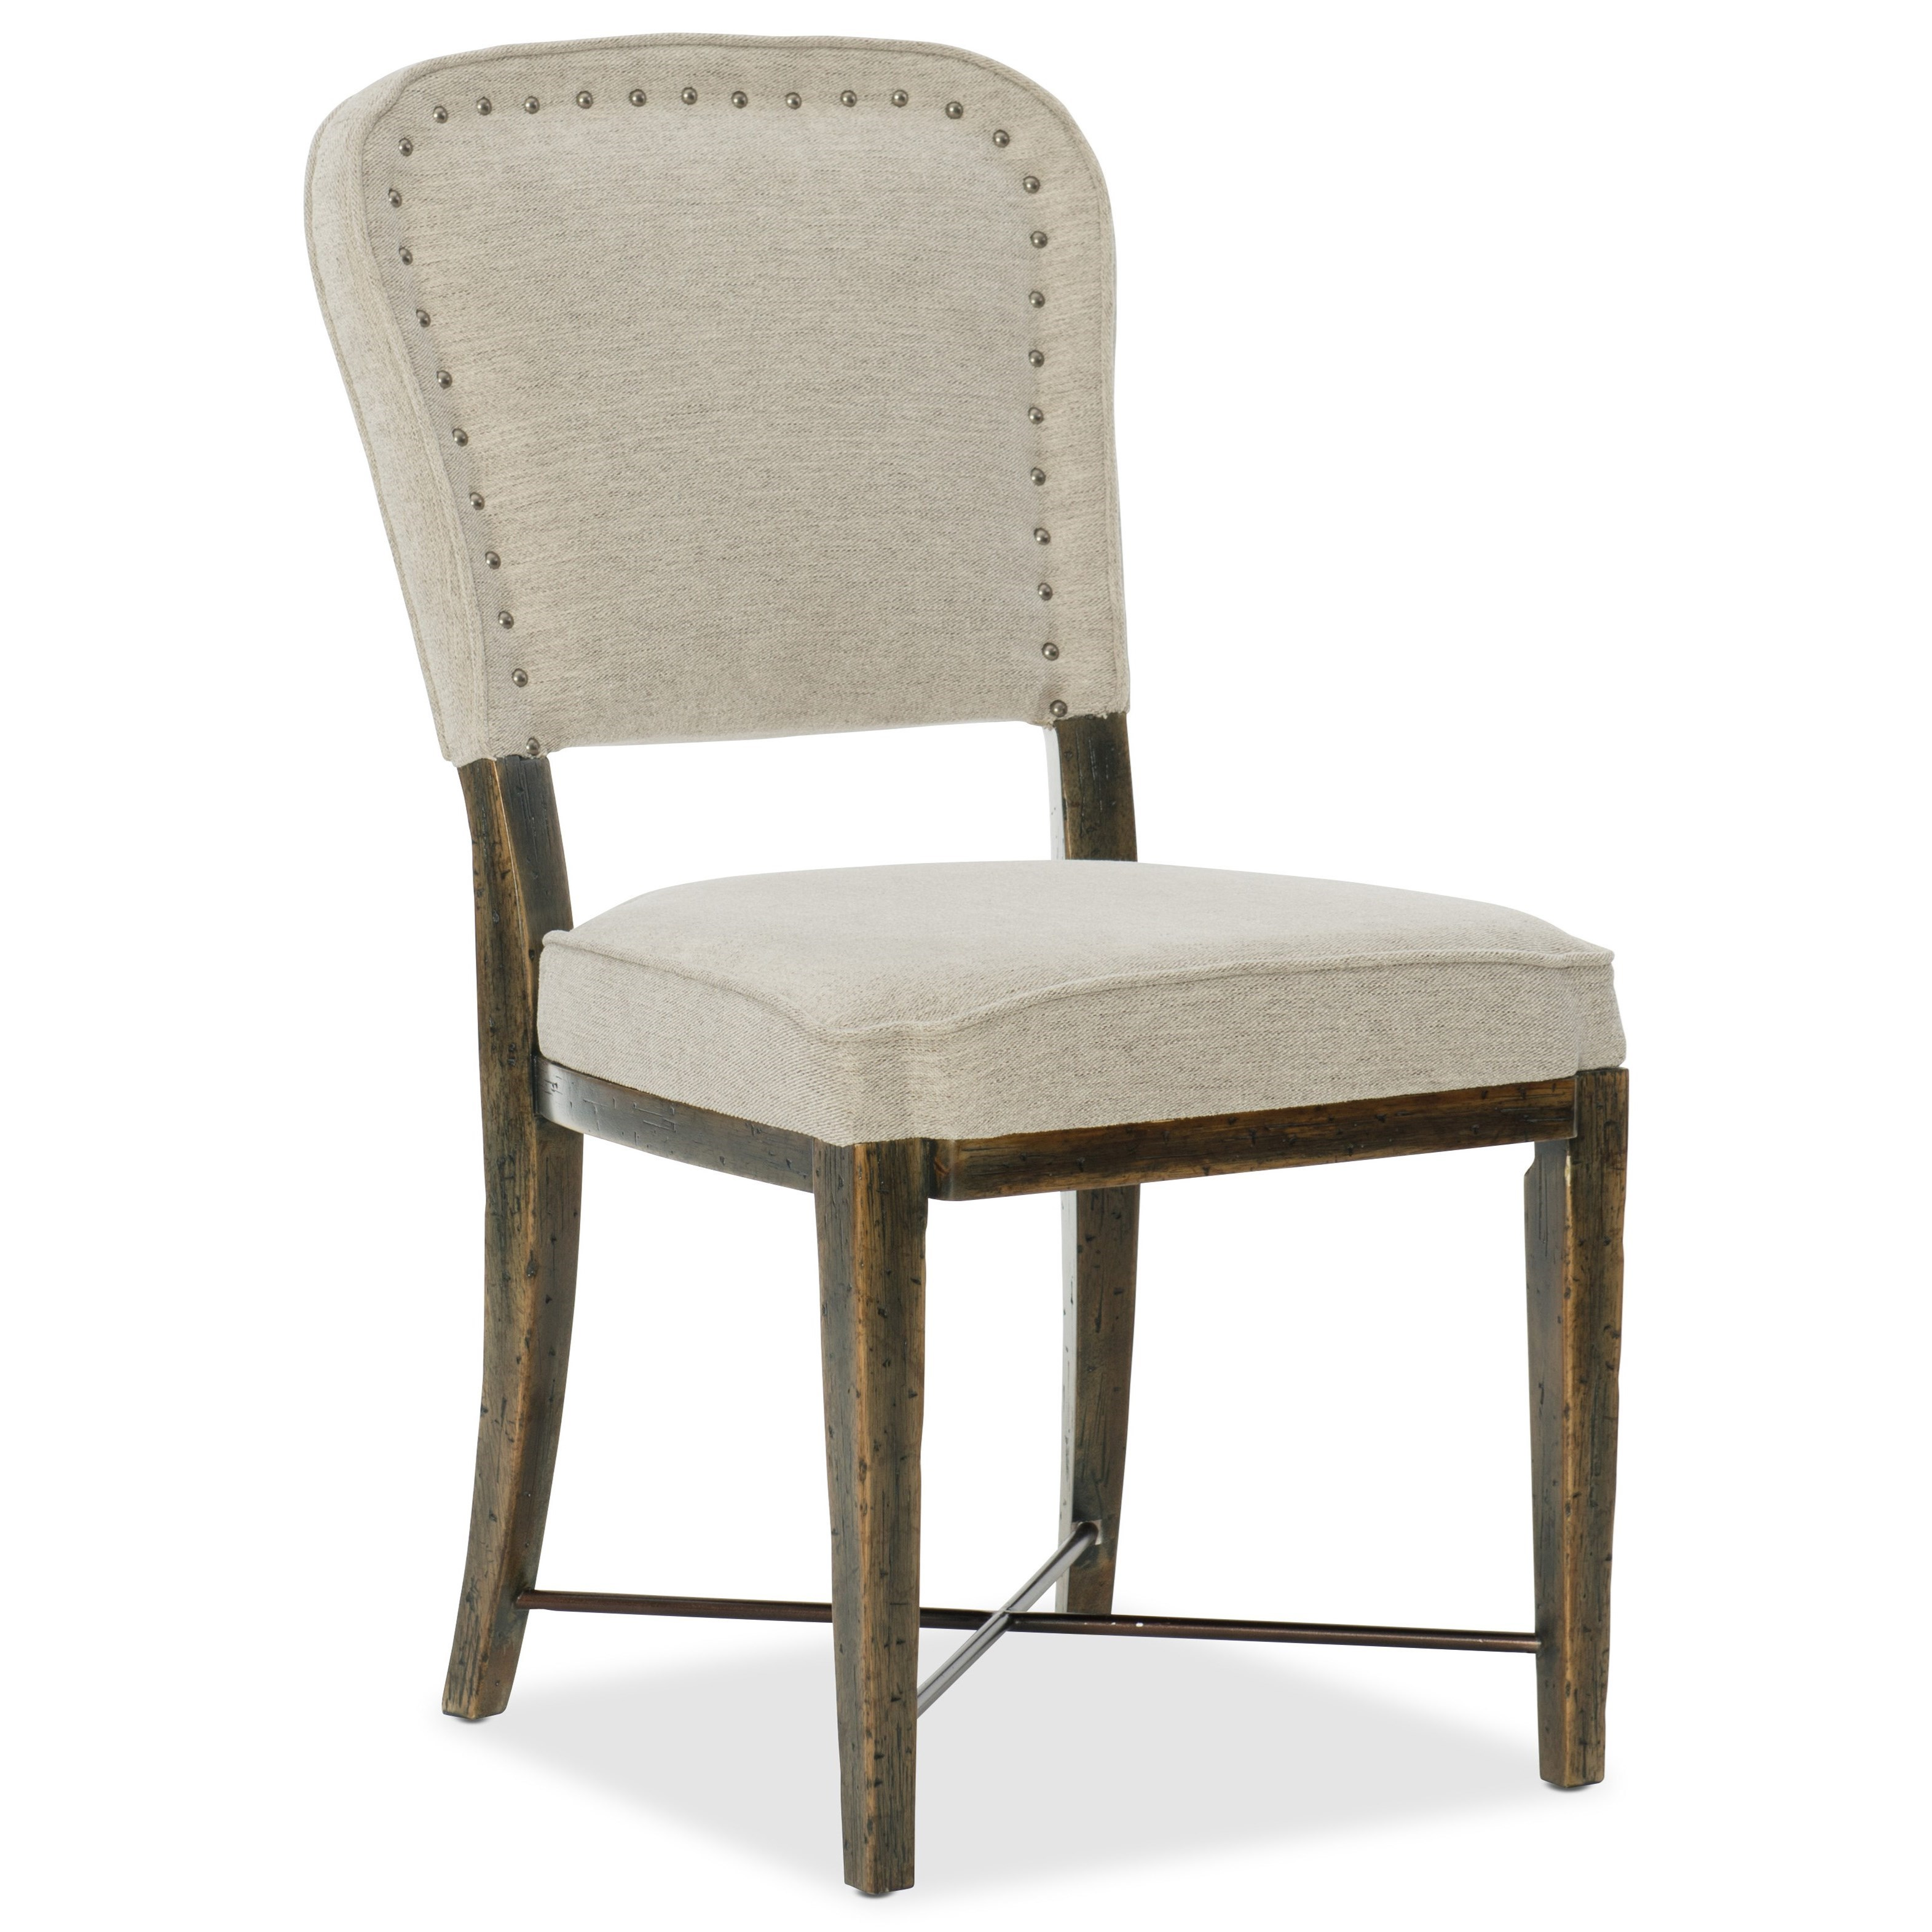 Hooker Furniture American Life-Crafted Upholstered Side Chair - Item Number: 1654-75410-DKW1